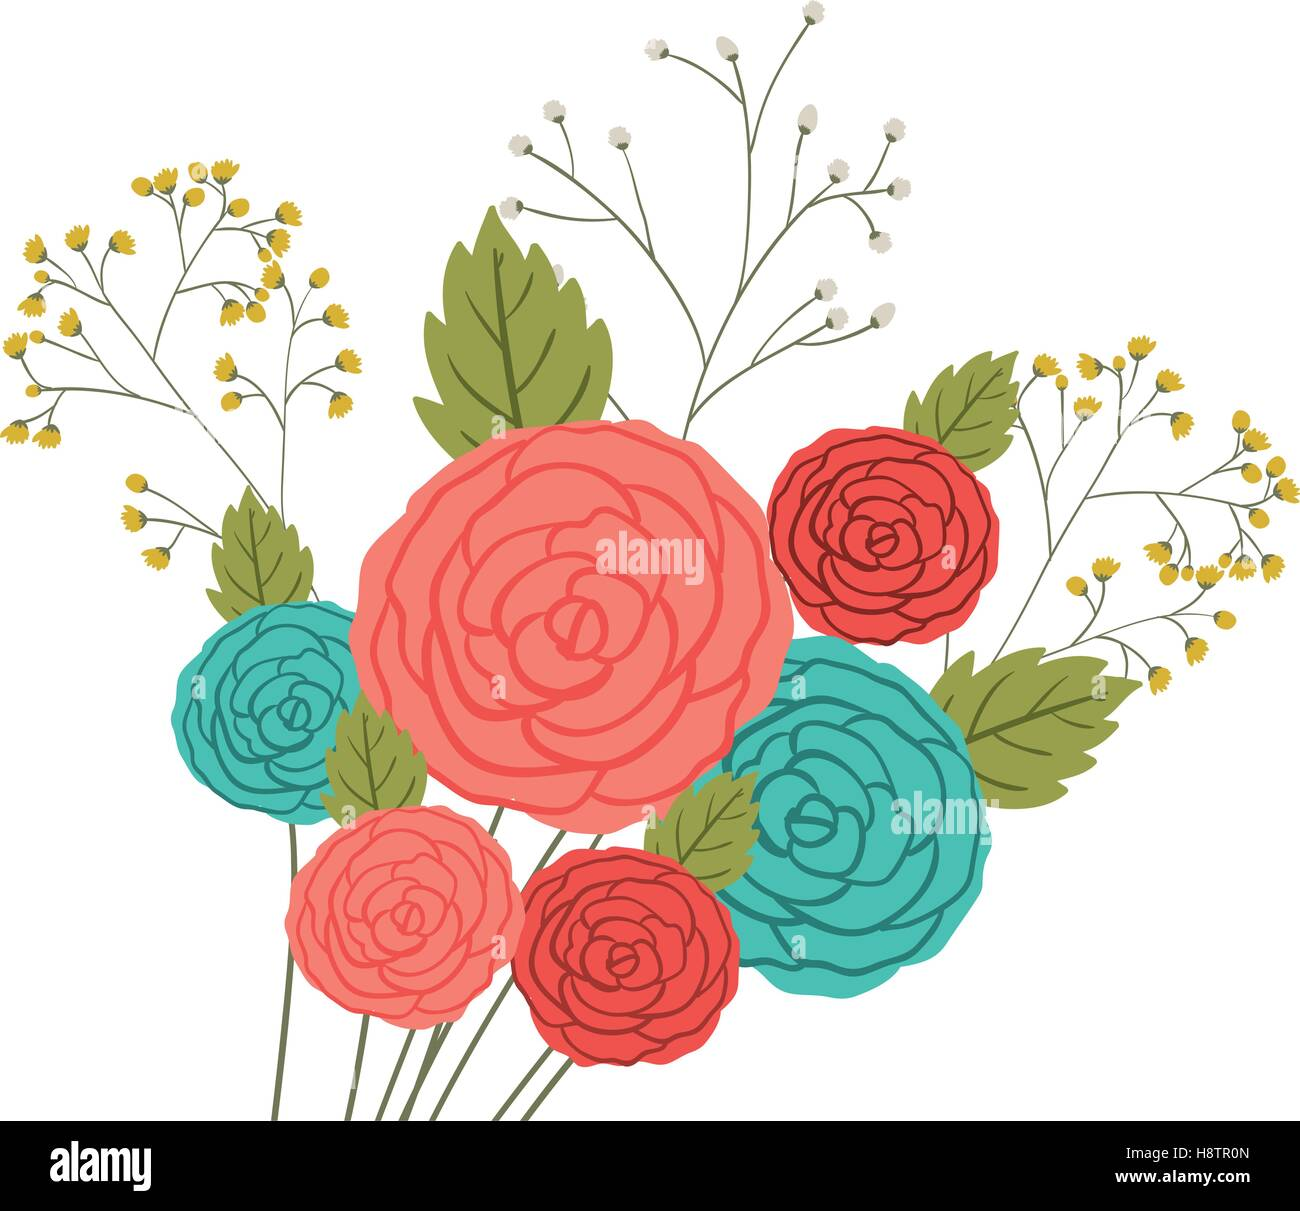 Roses Icon Decoration Rustic Garden Floral Nature Plant And Spring